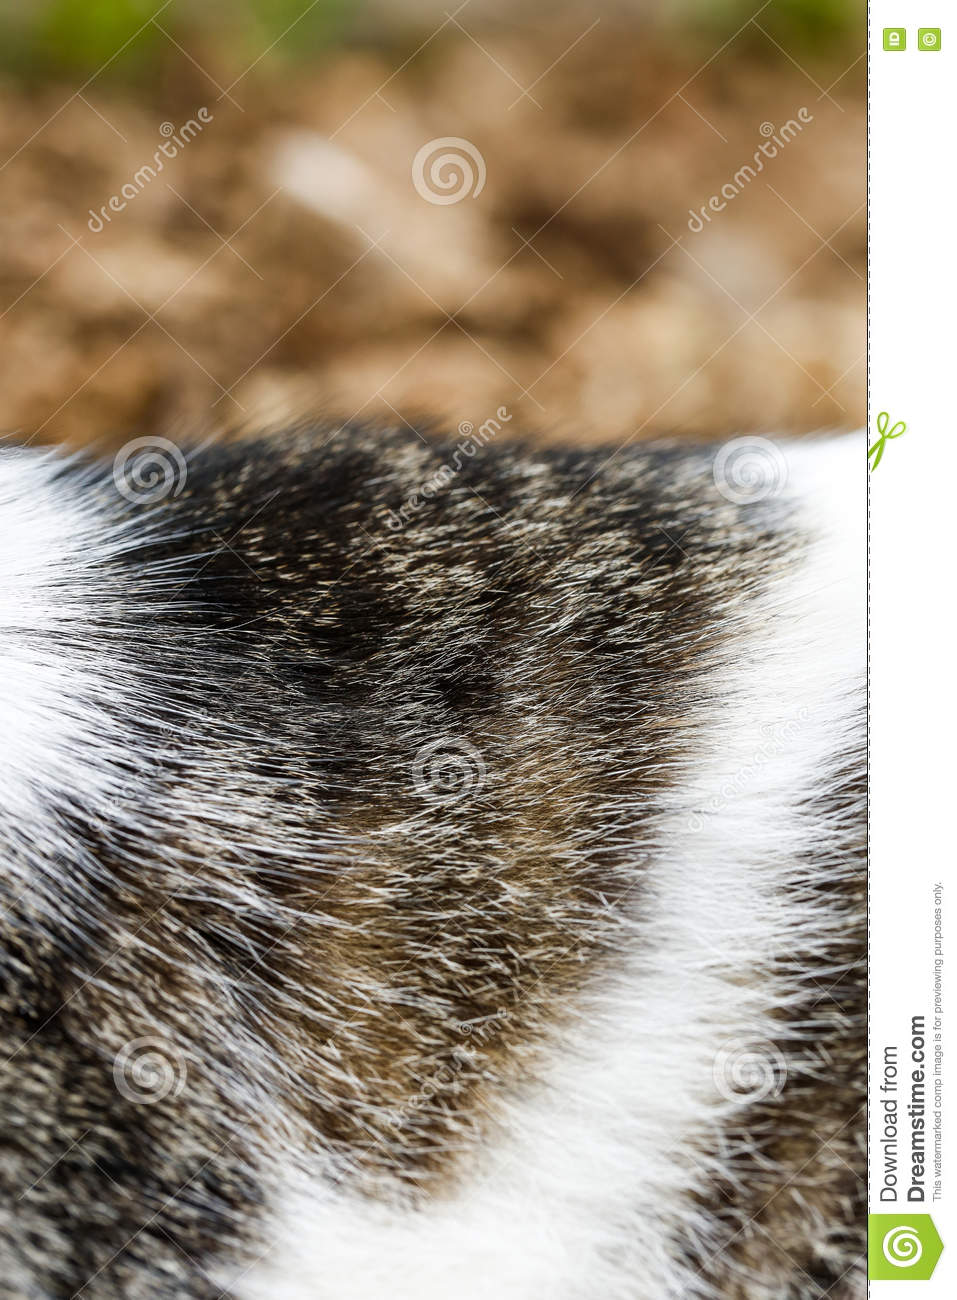 Close-up of domestic tiger patterned cat fur